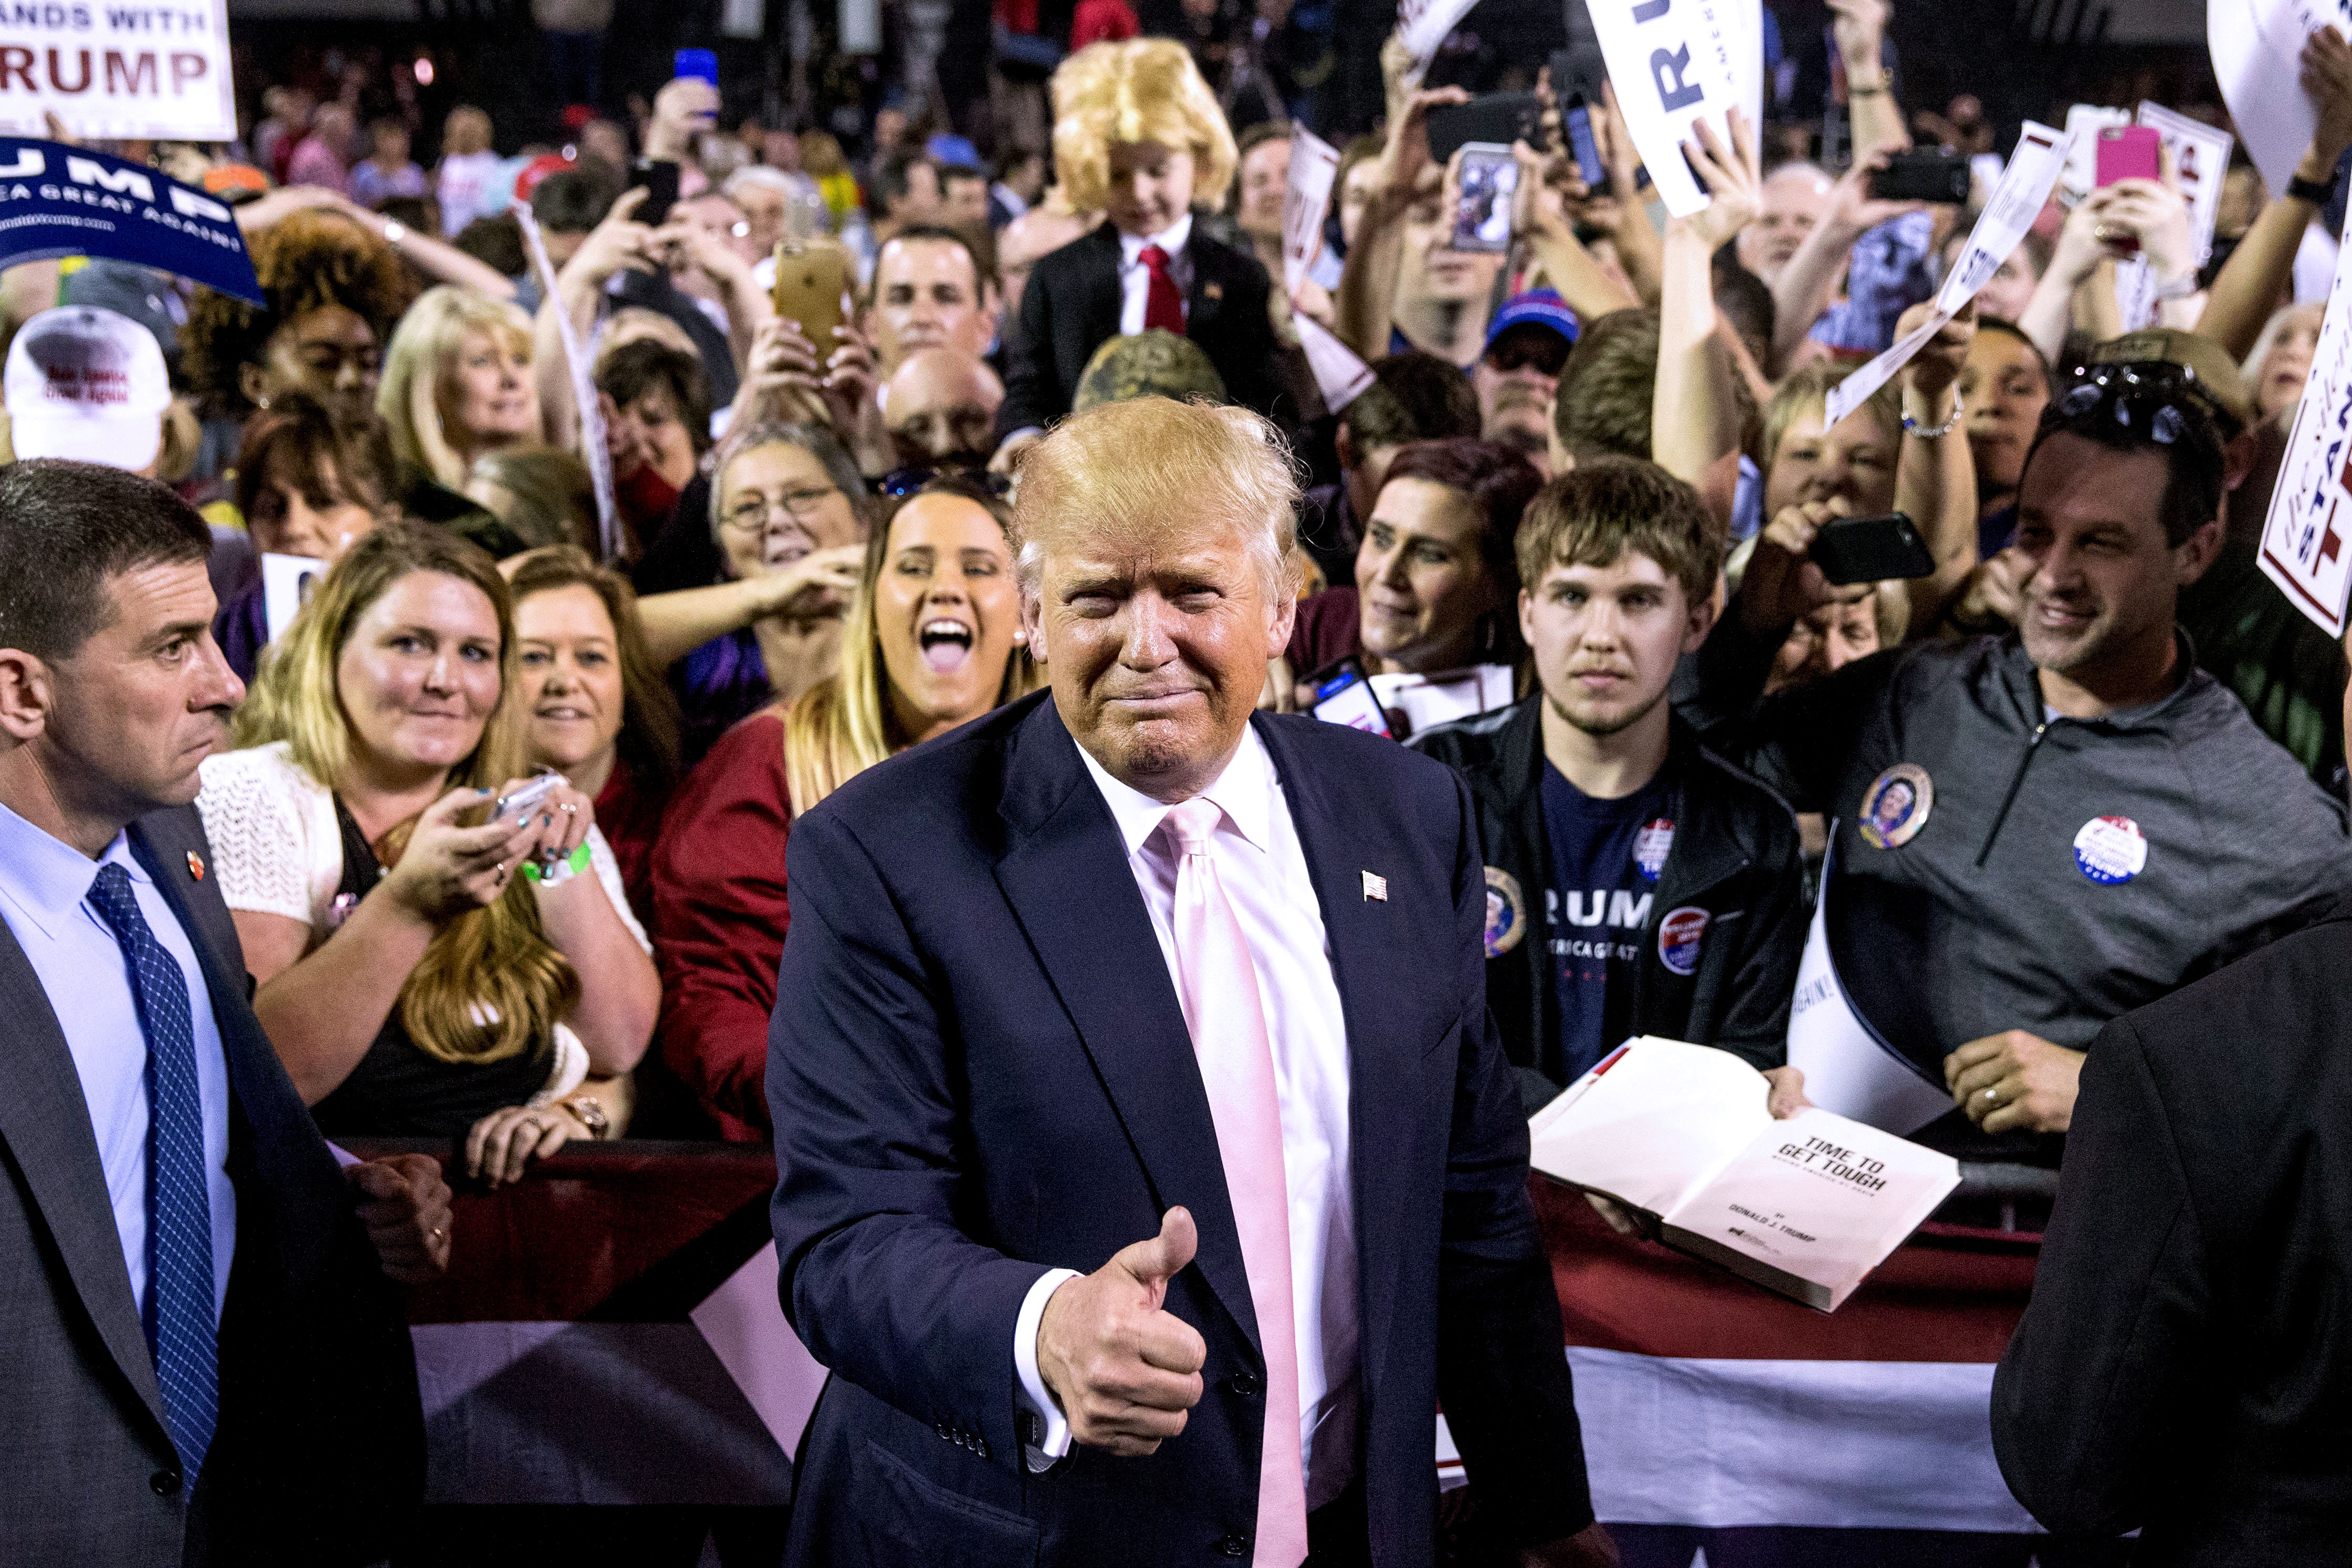 Republican presidential candidate Donald Trump holds a rally in Valdosta, Ga., on Feb. 29.